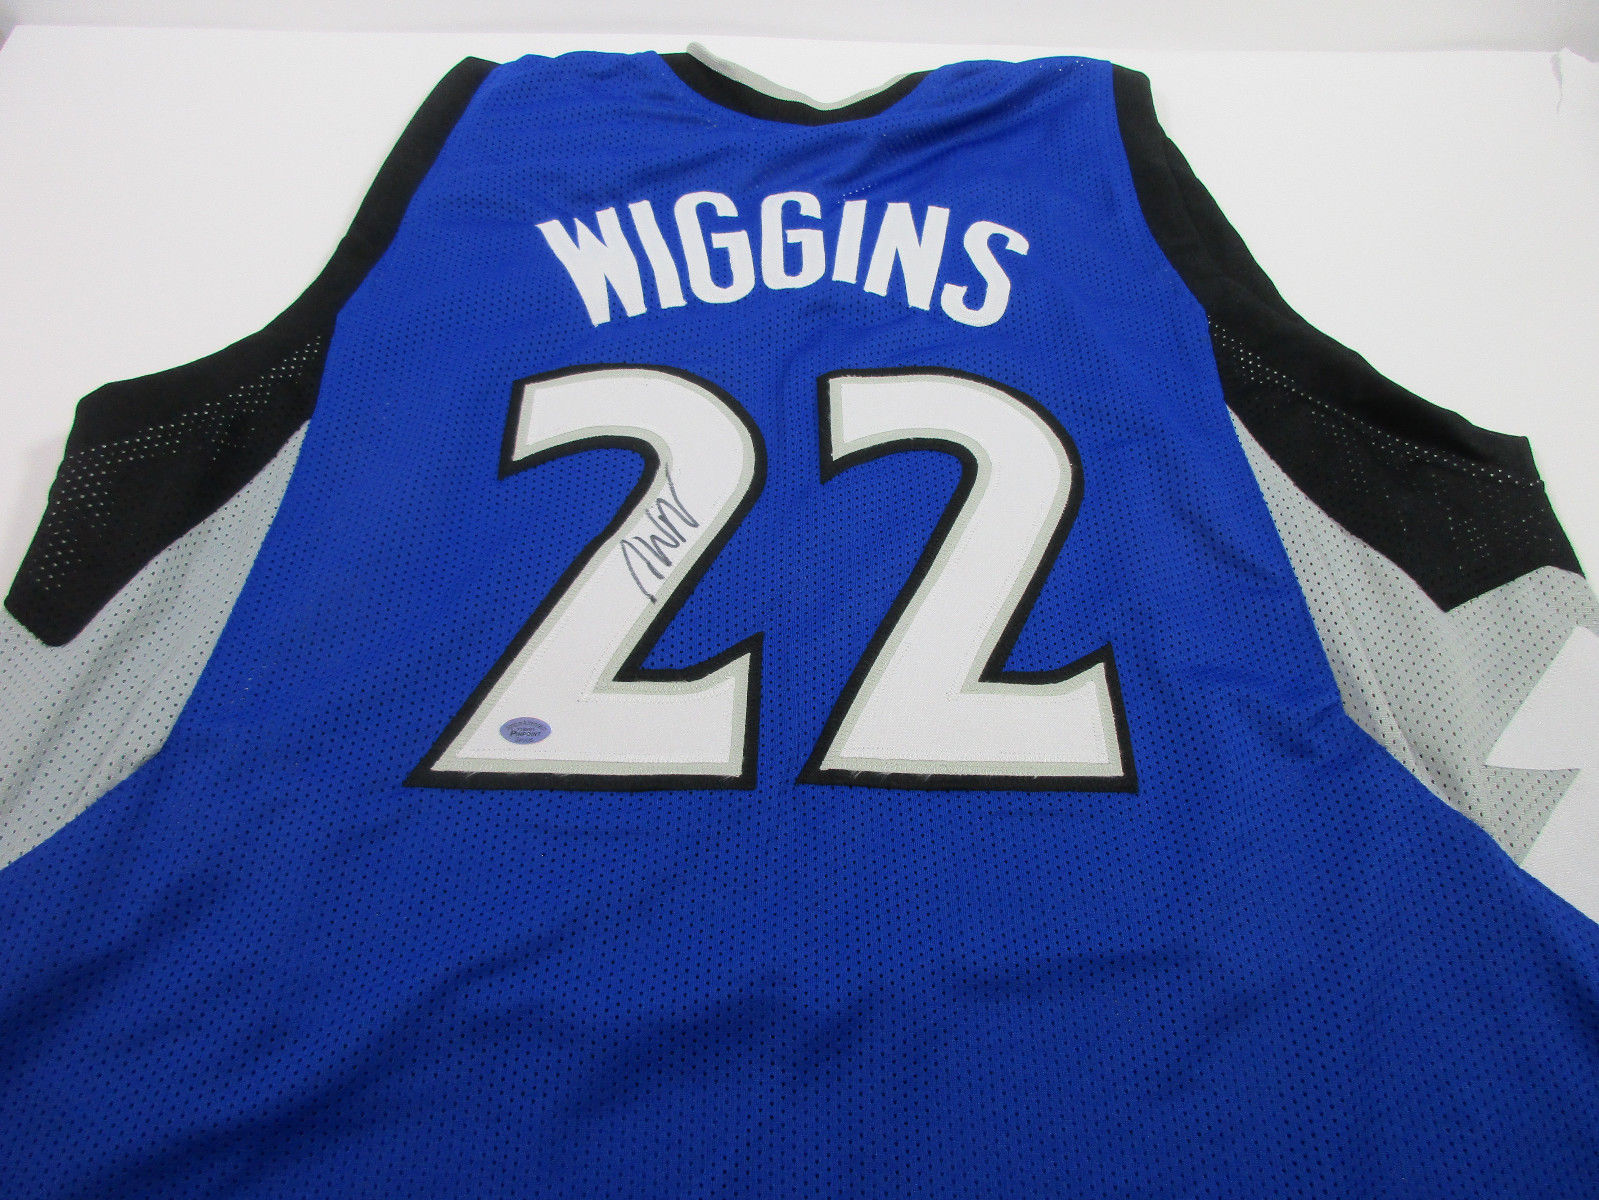 Andrew Wiggins Signed Timberwolves Jersey / #1 Overall Pick 2014 NBA Draft / COA